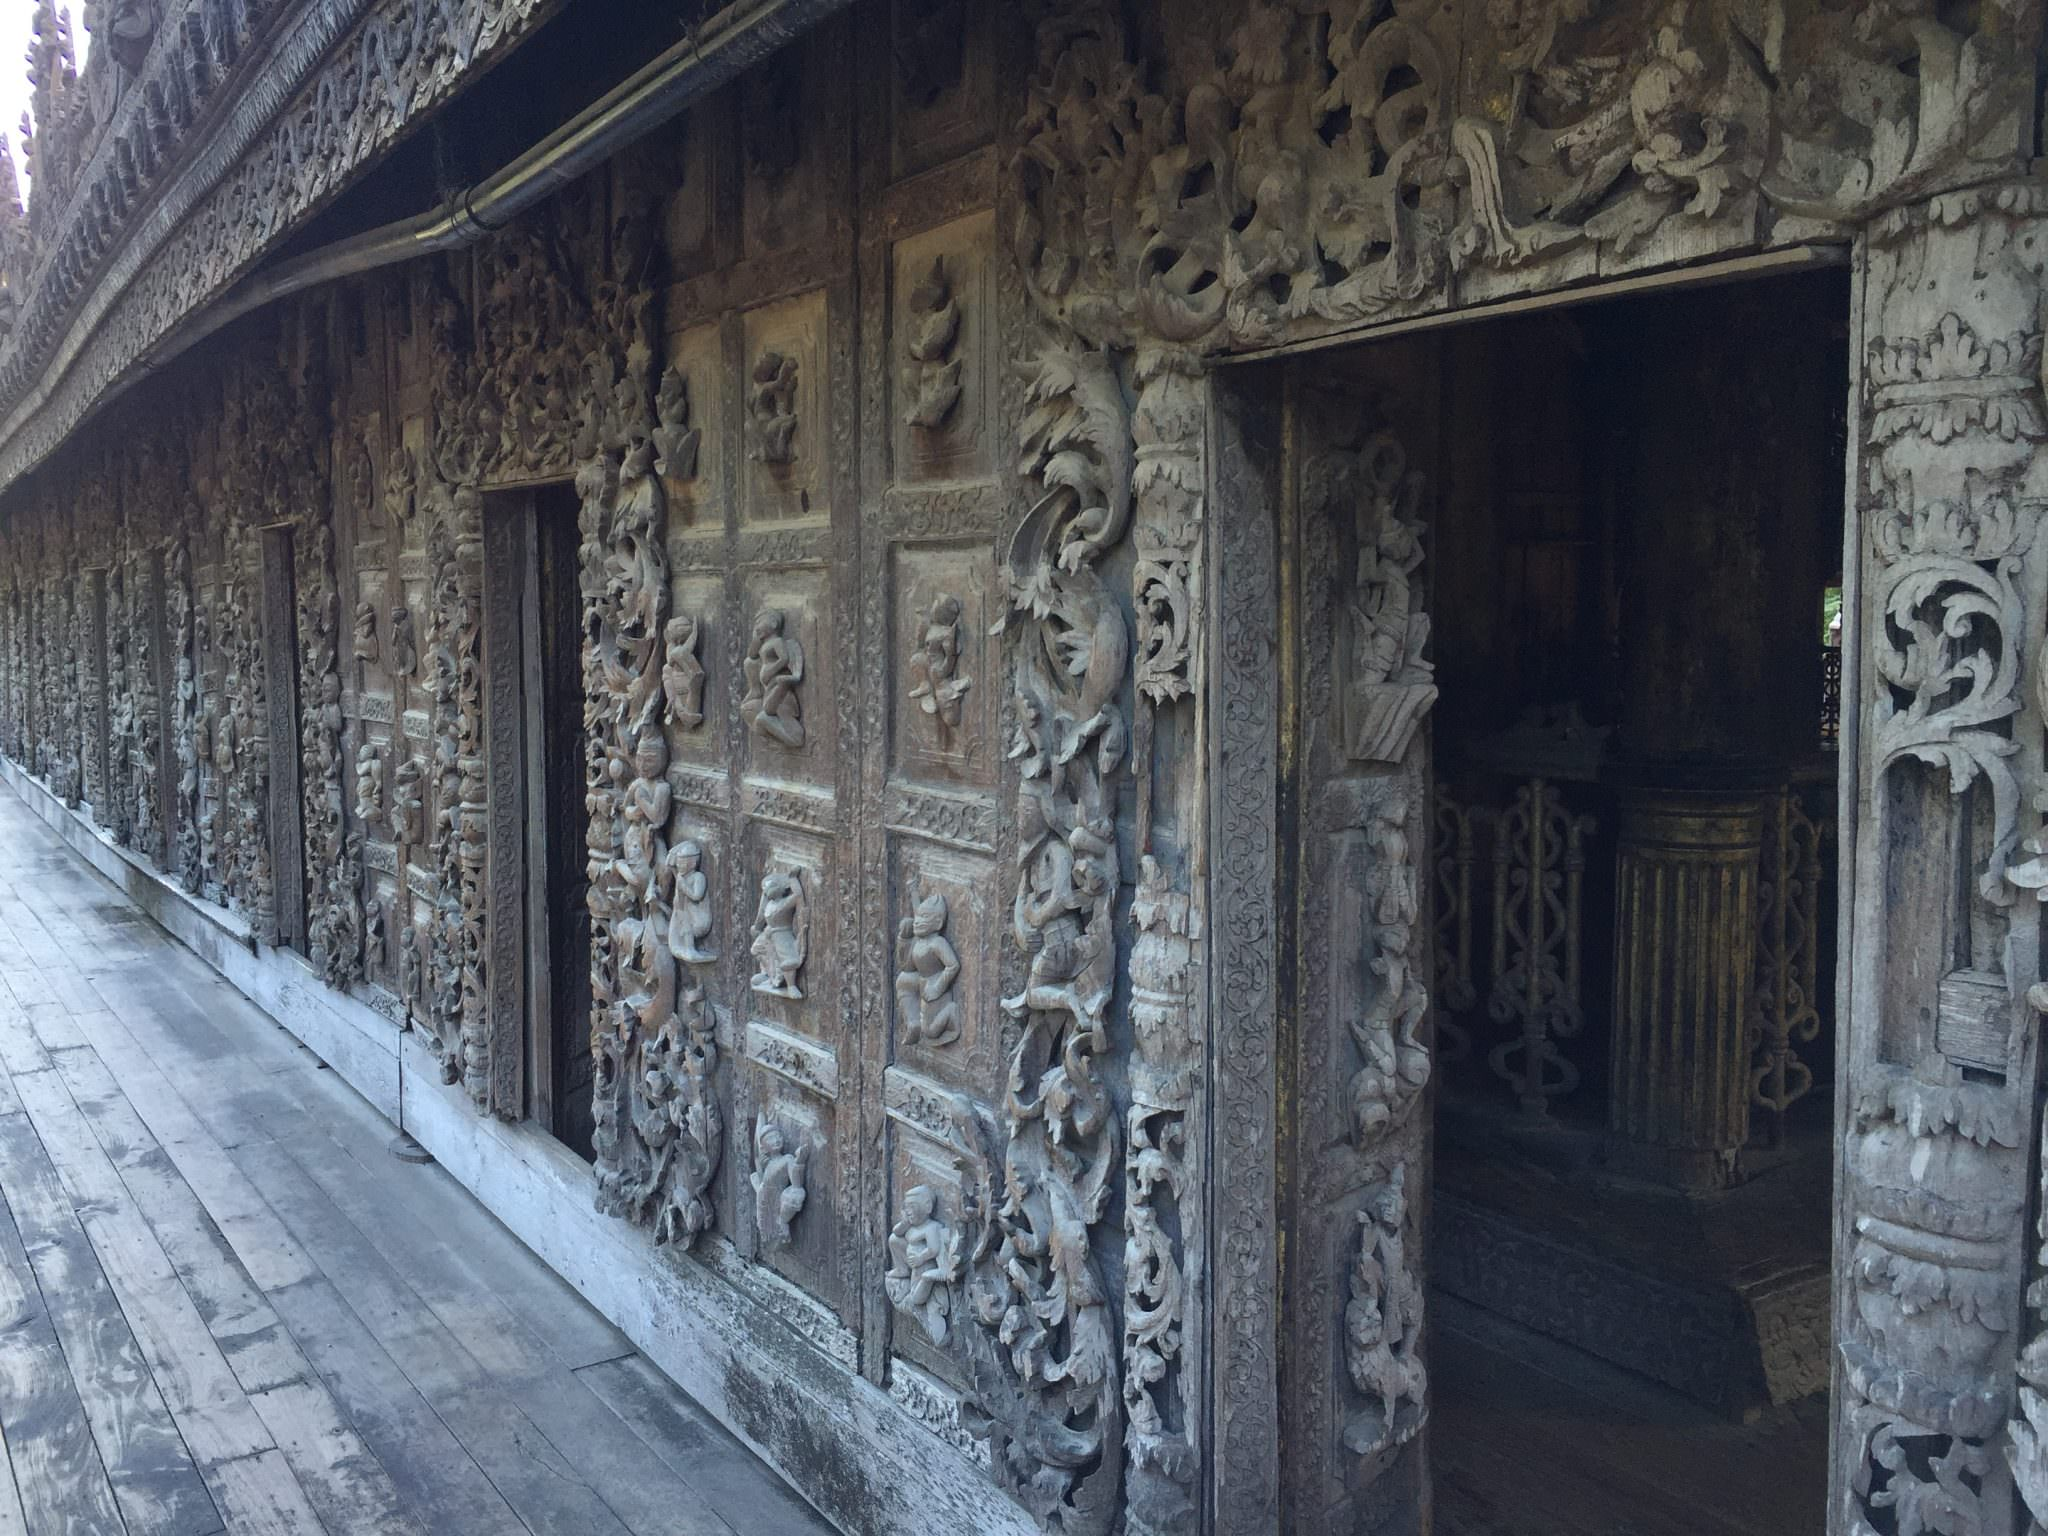 Every inch of the Palace is carved with stories and iconography of Buddhism. © 2015 Gail Jessen